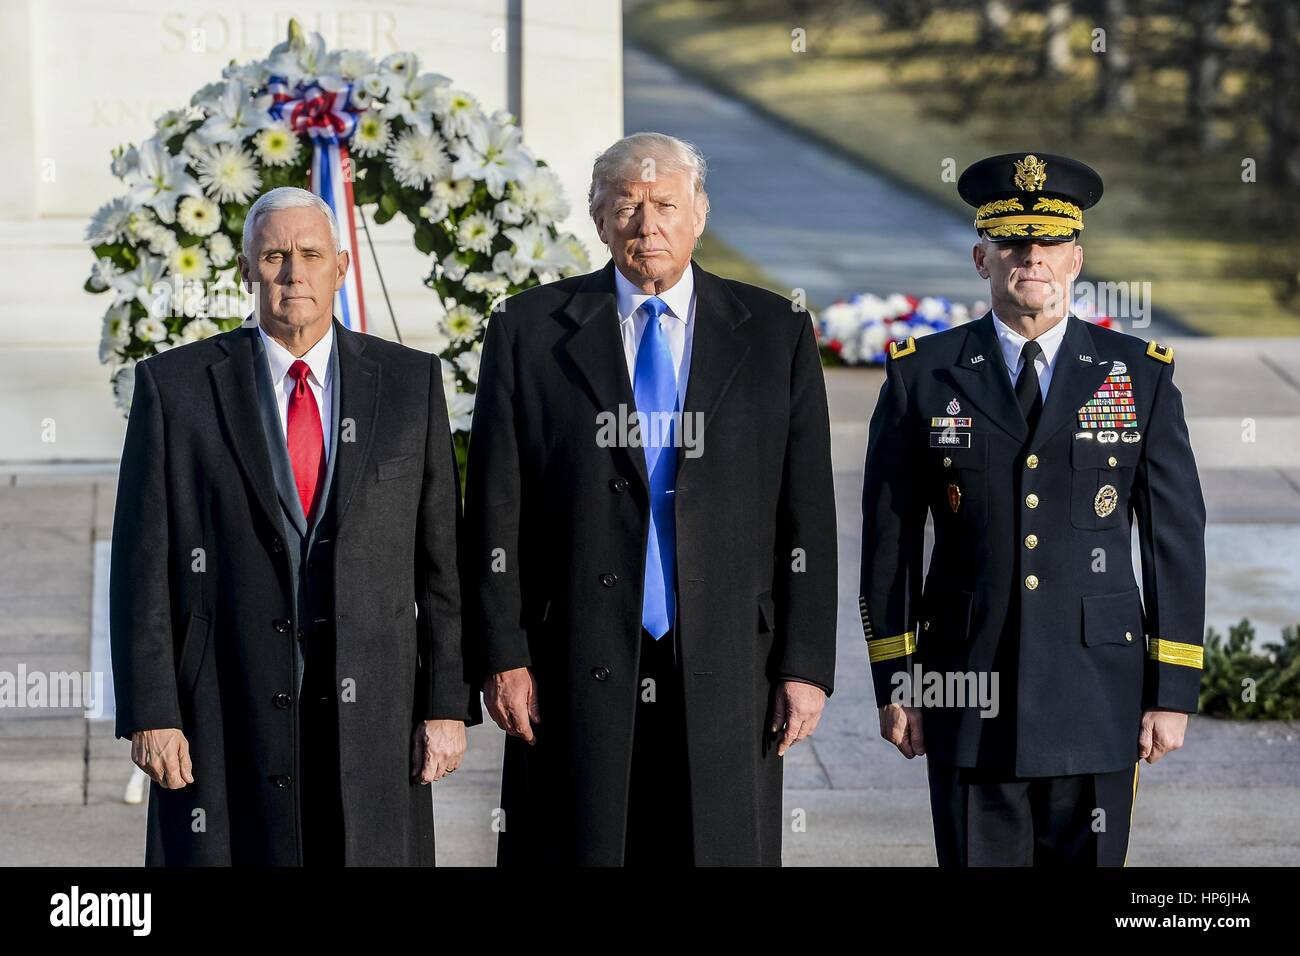 U.S. President-elect Donald Trump, Vice President-elect Mike Pence, and U.S. Army Commanding General Bradley Becker - Stock Image